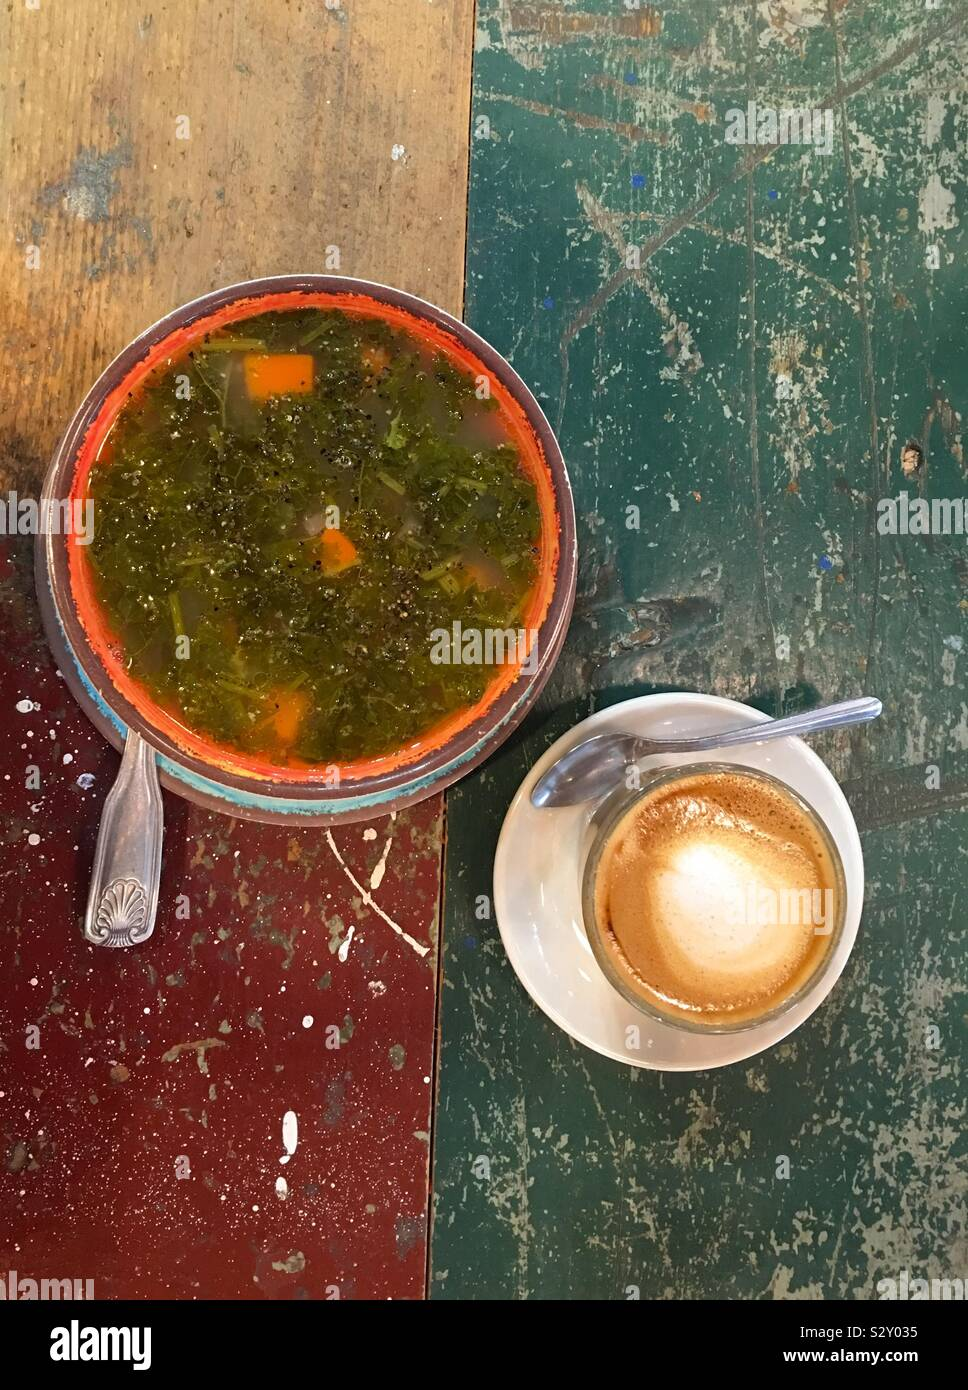 healthy-kale-vegetable-soup-and-cortado-coffee-that-is-half-espresso-half-milk-grunge-scratch-paint-wood-table-flat-lay-S2Y035.jpg